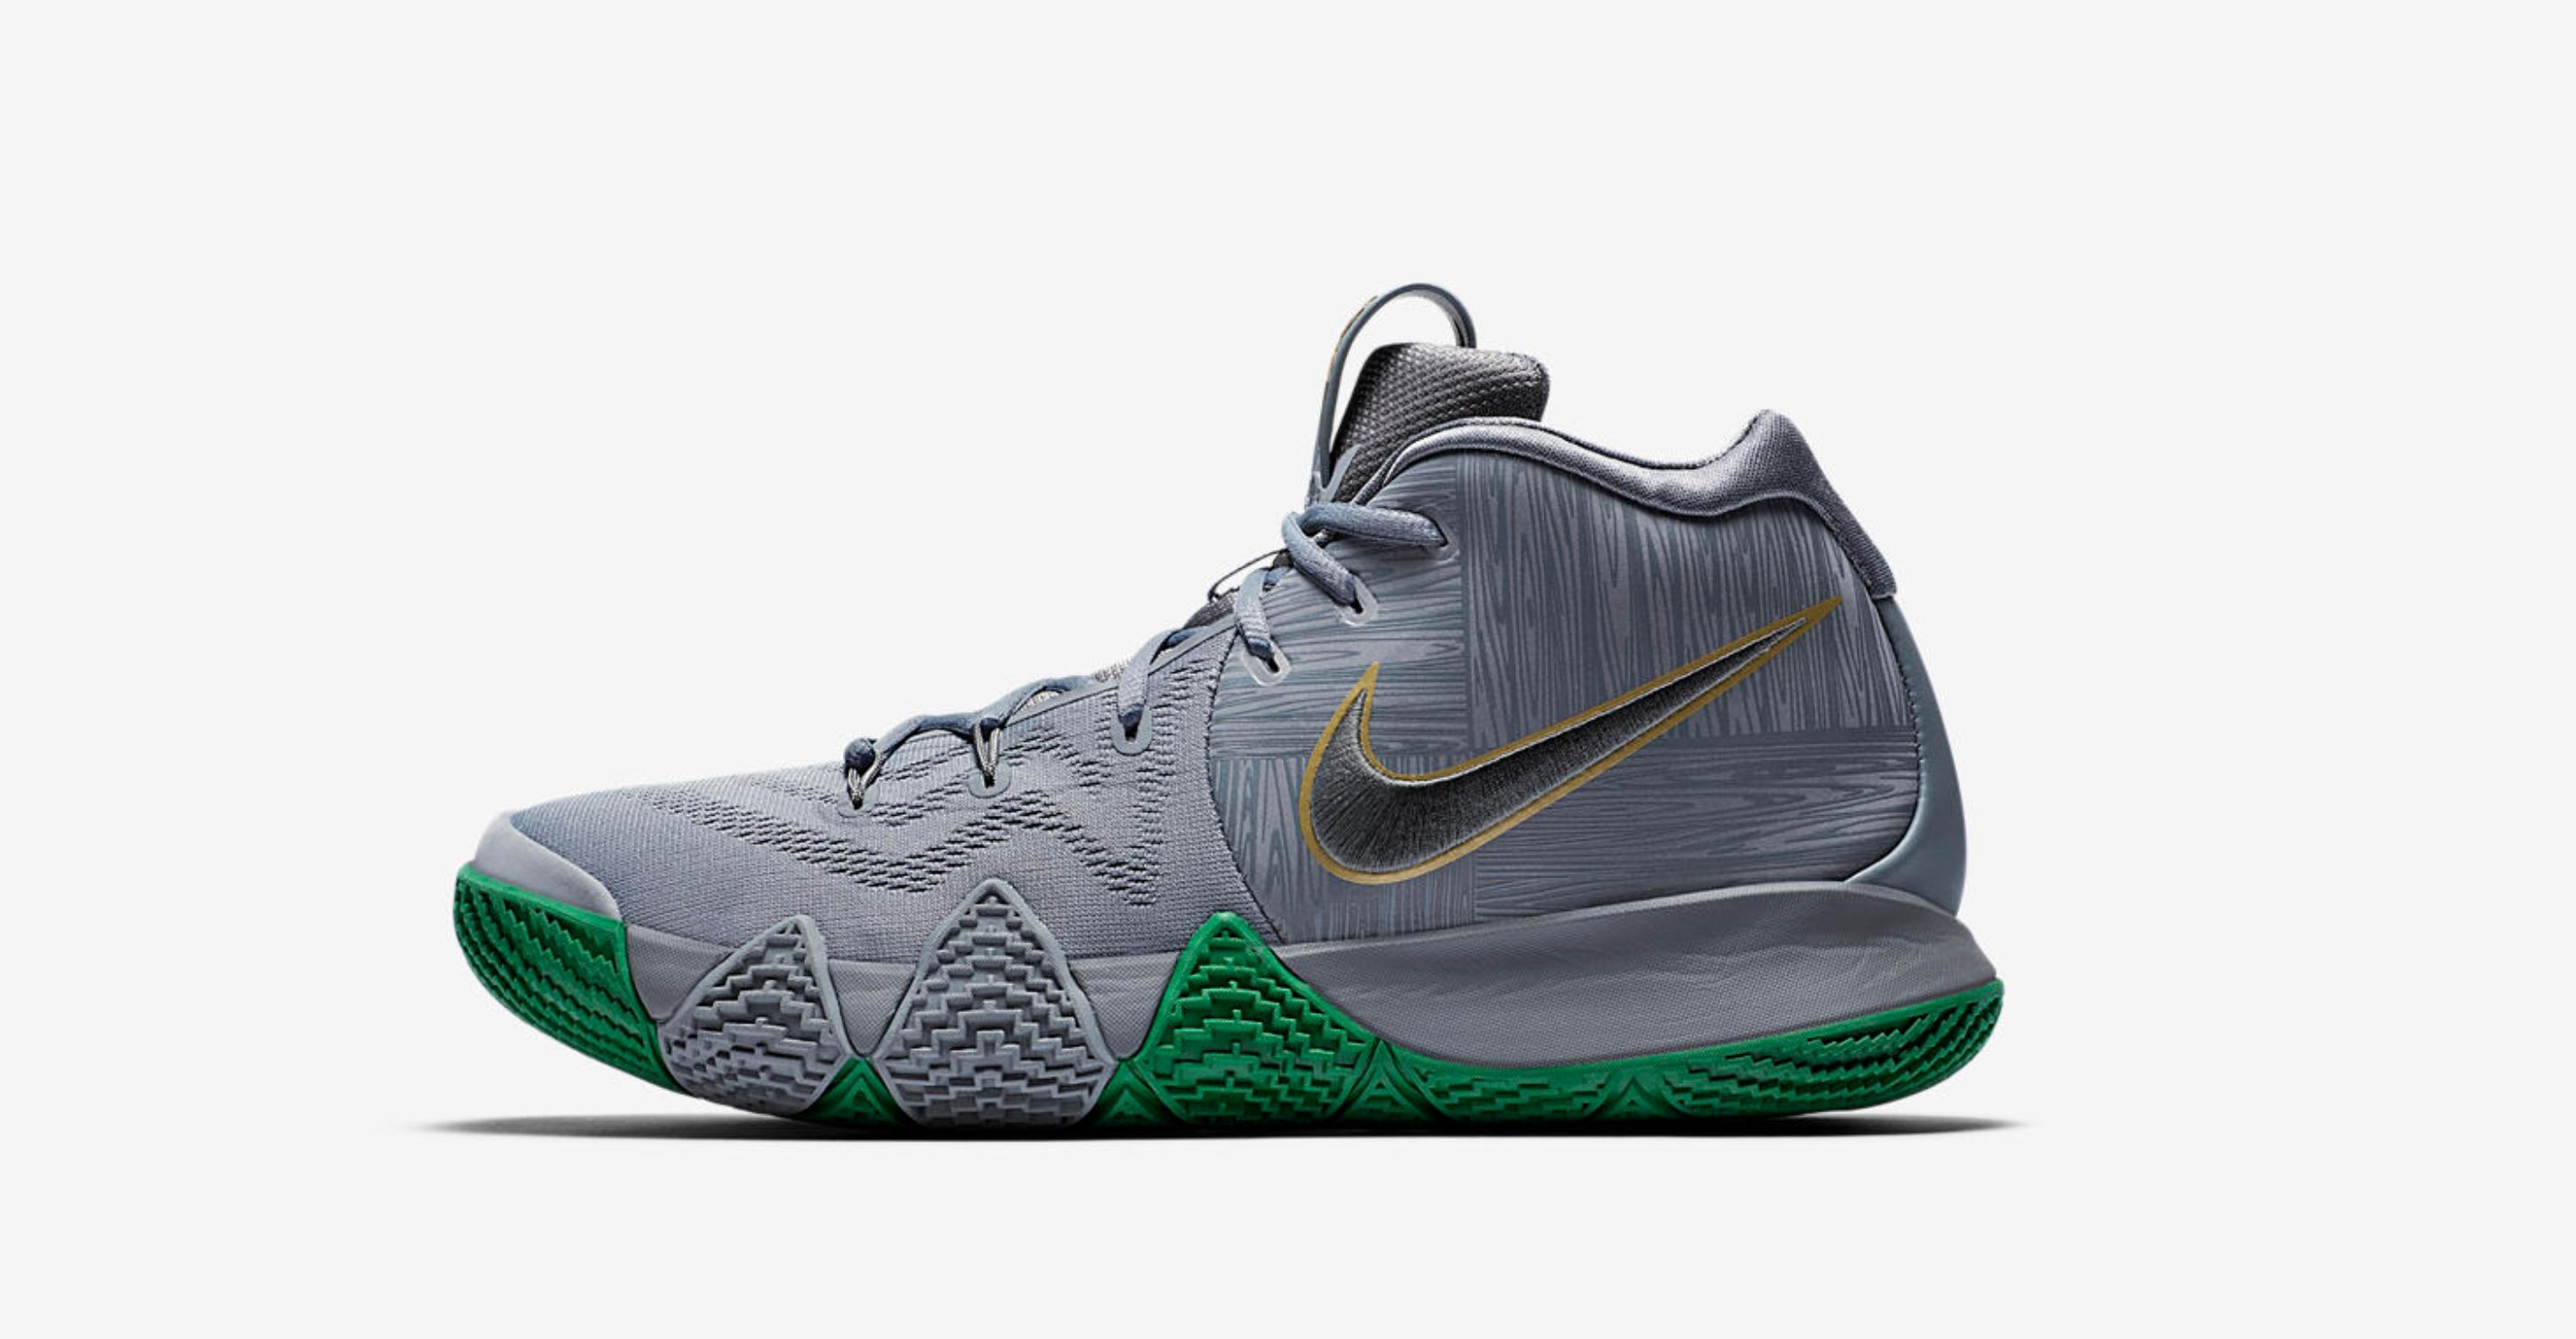 nike kyrie 4 'parquet' city edition 1